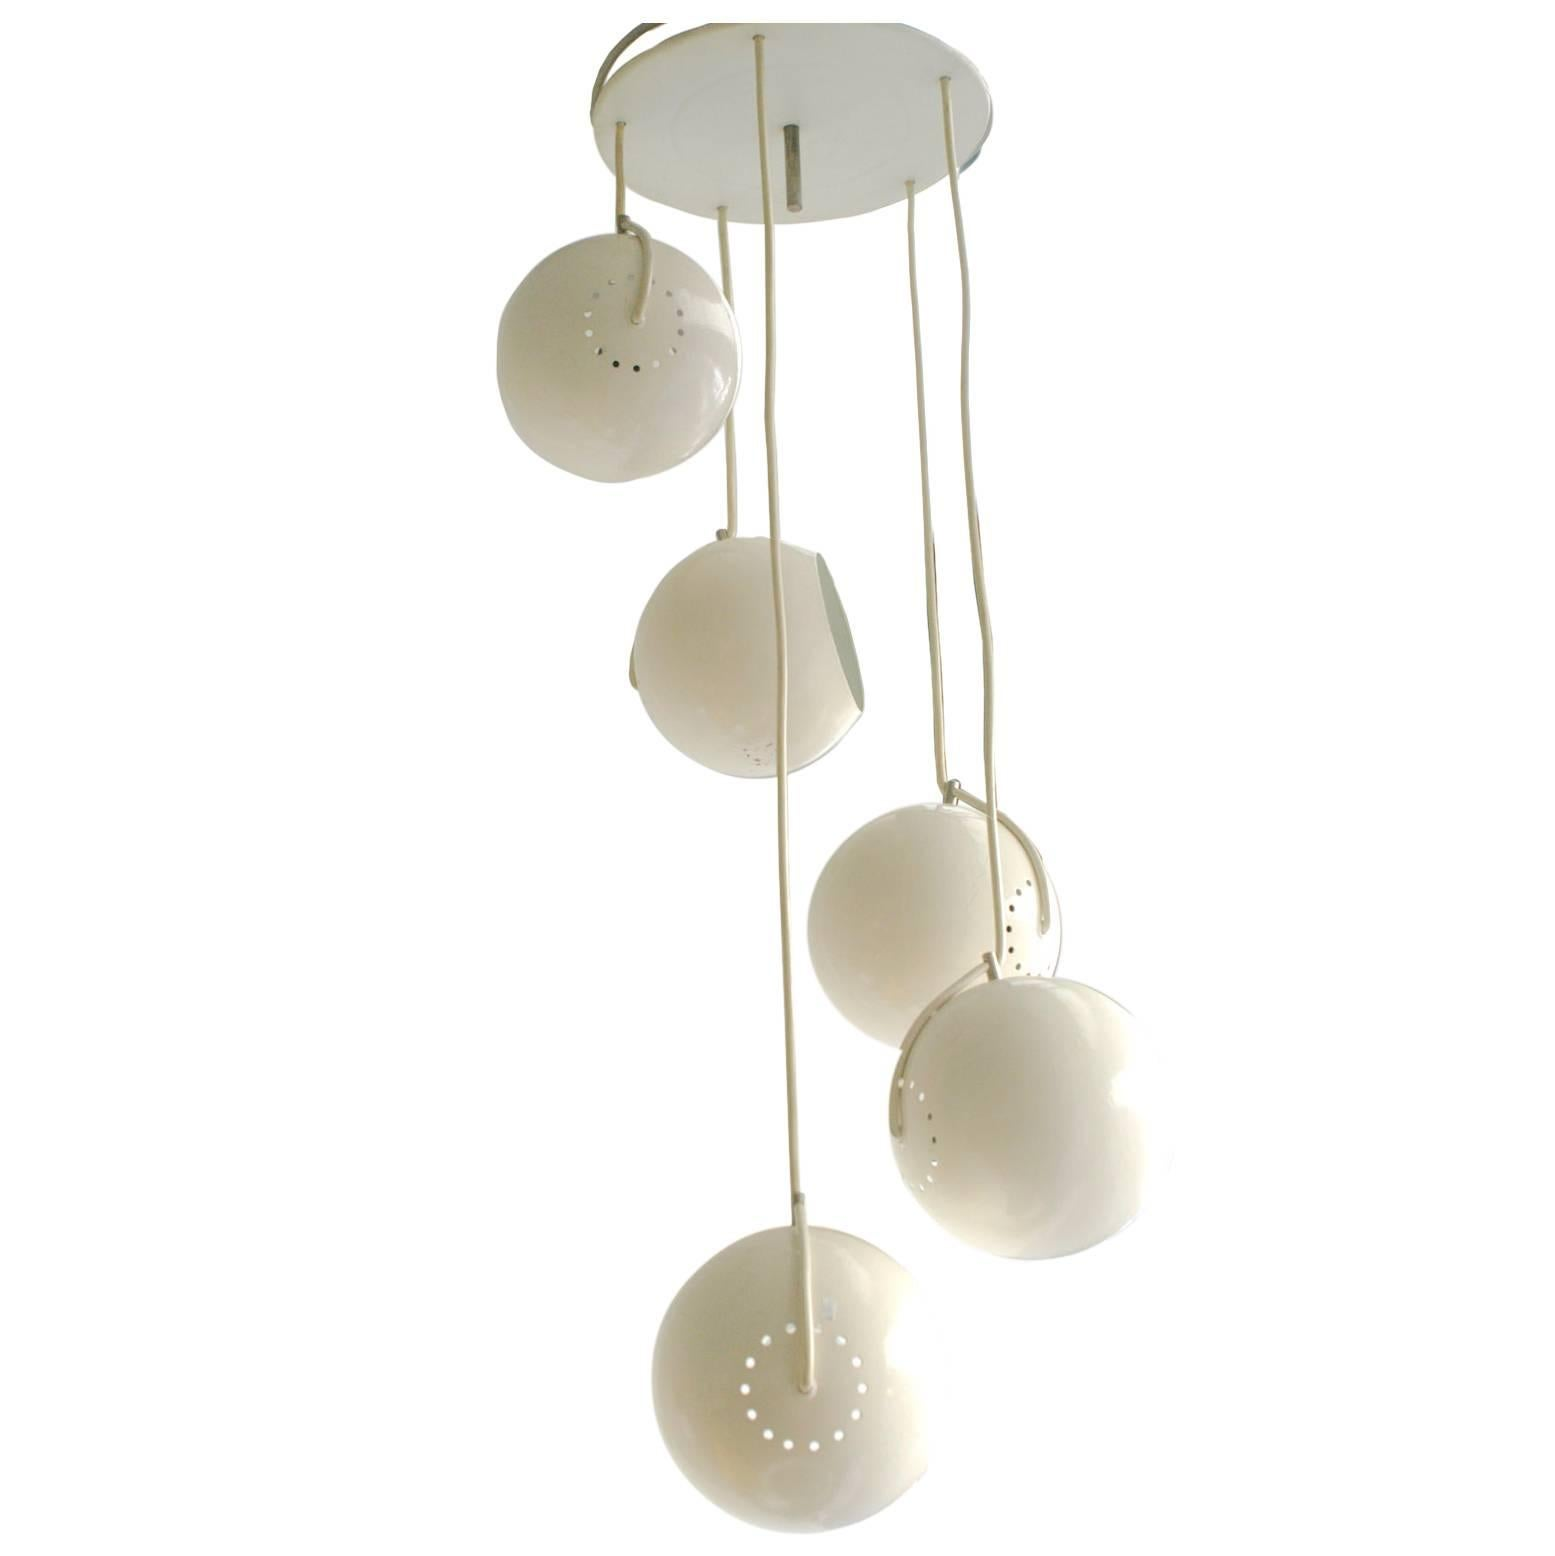 Italian Space Age white Lacquered Five Tier Cascade Chandelier by Reggiani